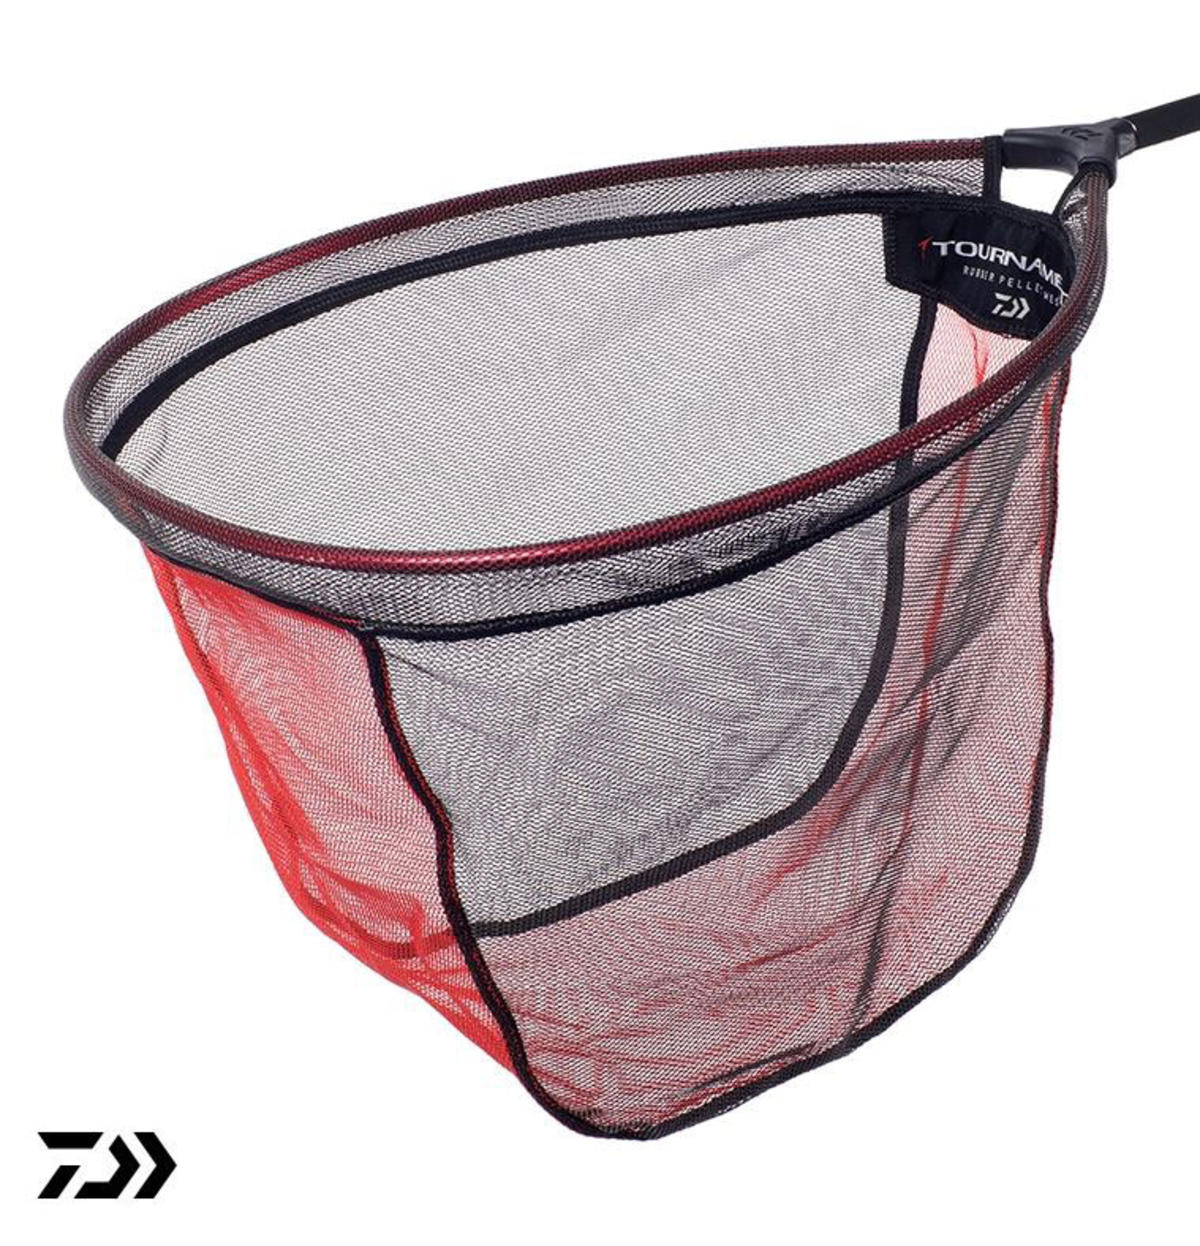 New Daiwa Tournament Rubber Pellet Landing Net Heads - All Sizes Available